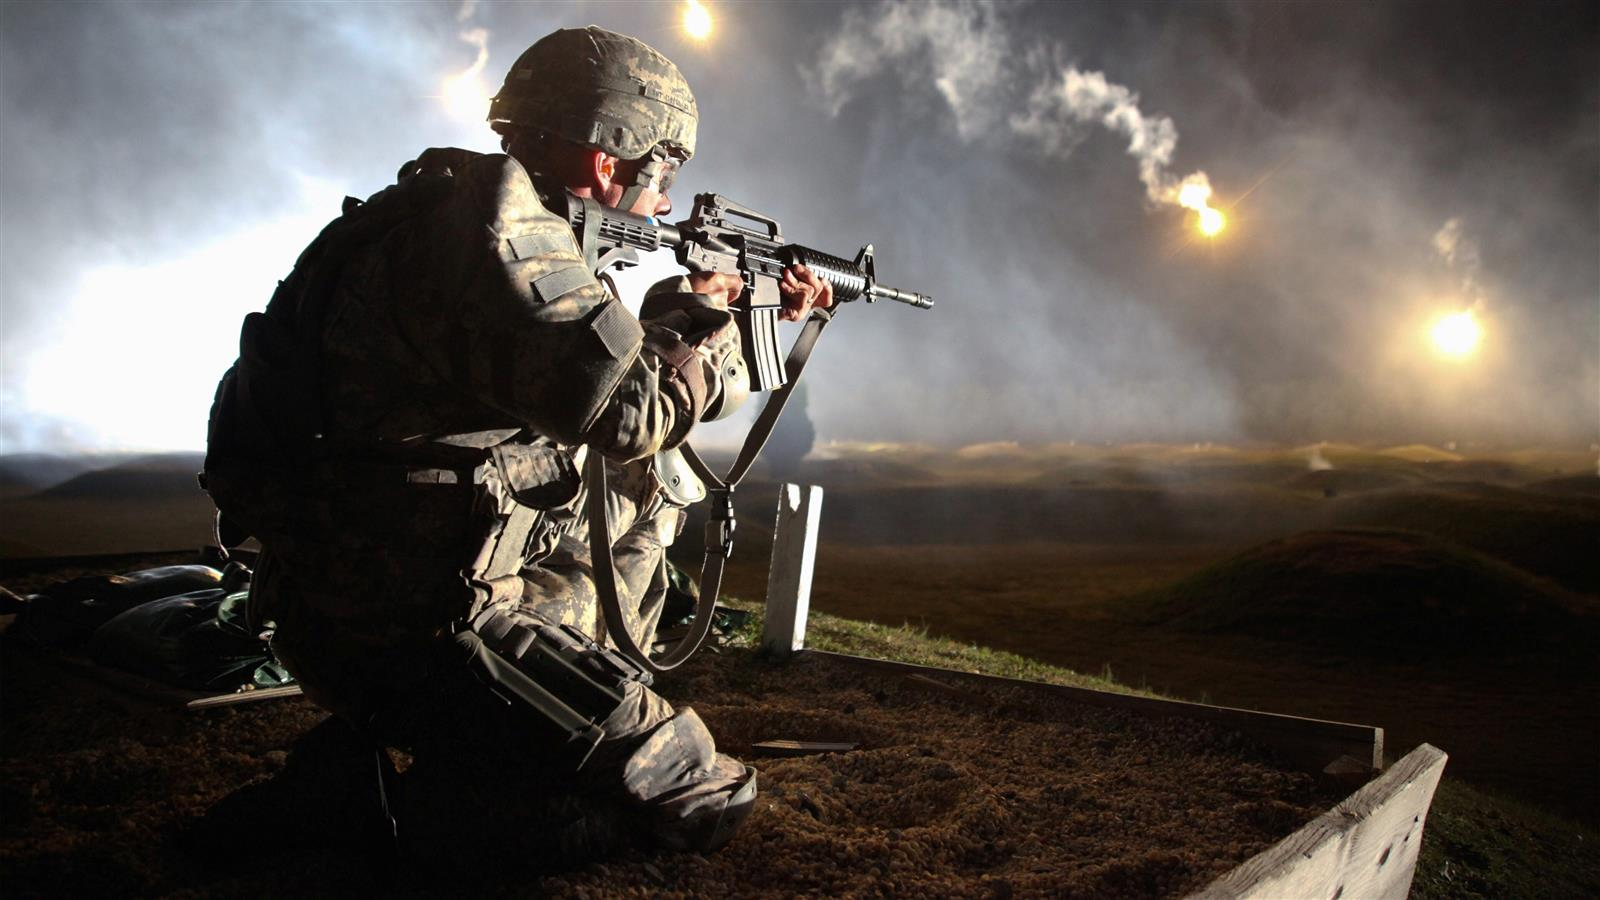 1600x900 Army Soldier Petroling at Night Photo